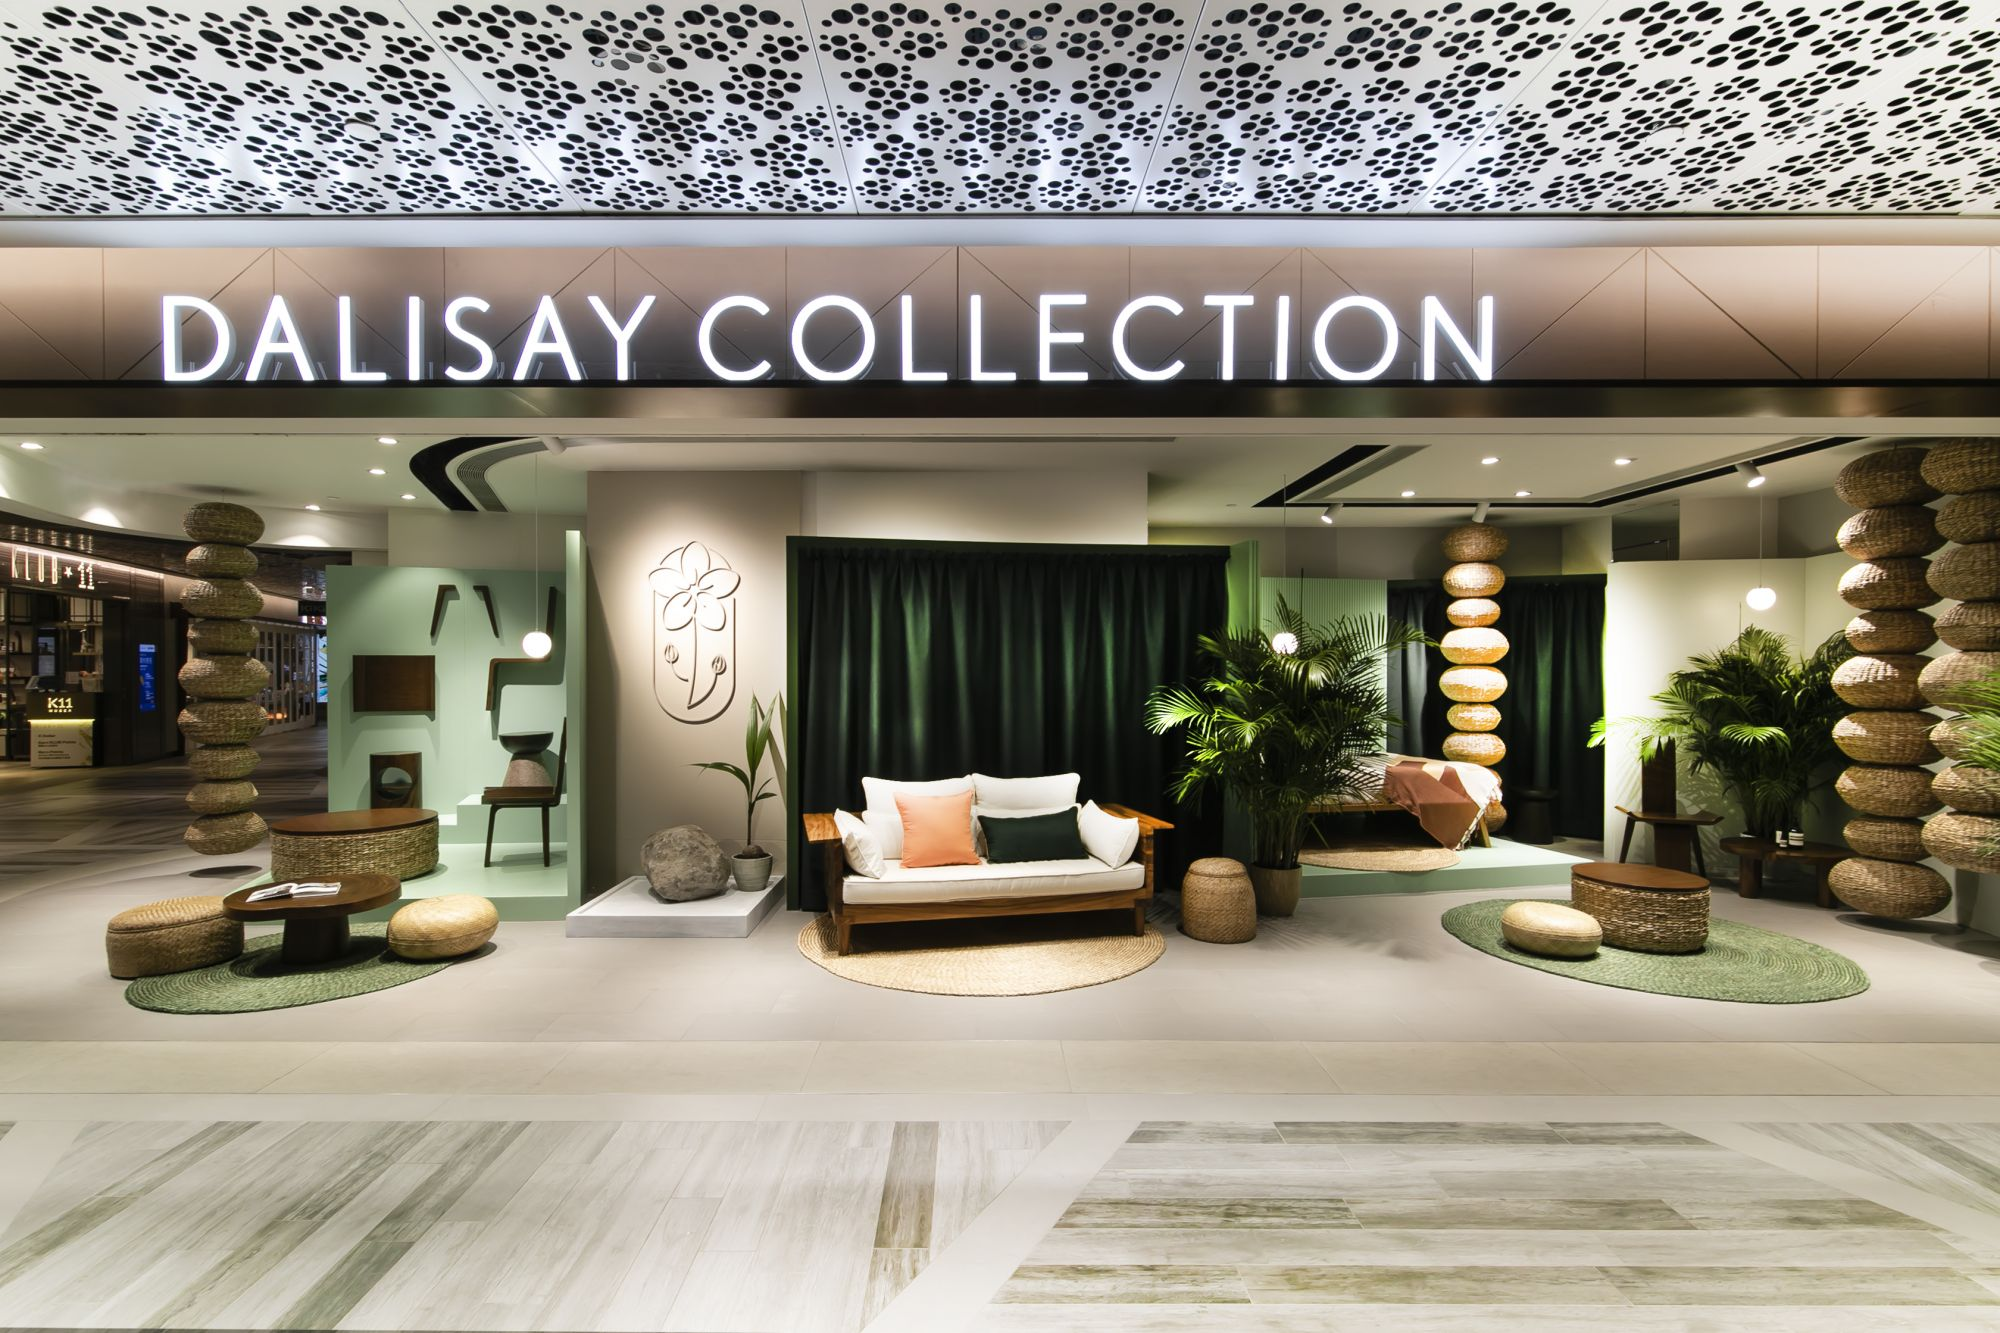 Dalisay Collection Brings Filipino Craftsmanship To K11 Musea With The Launch of Furniture Pop-Up Store